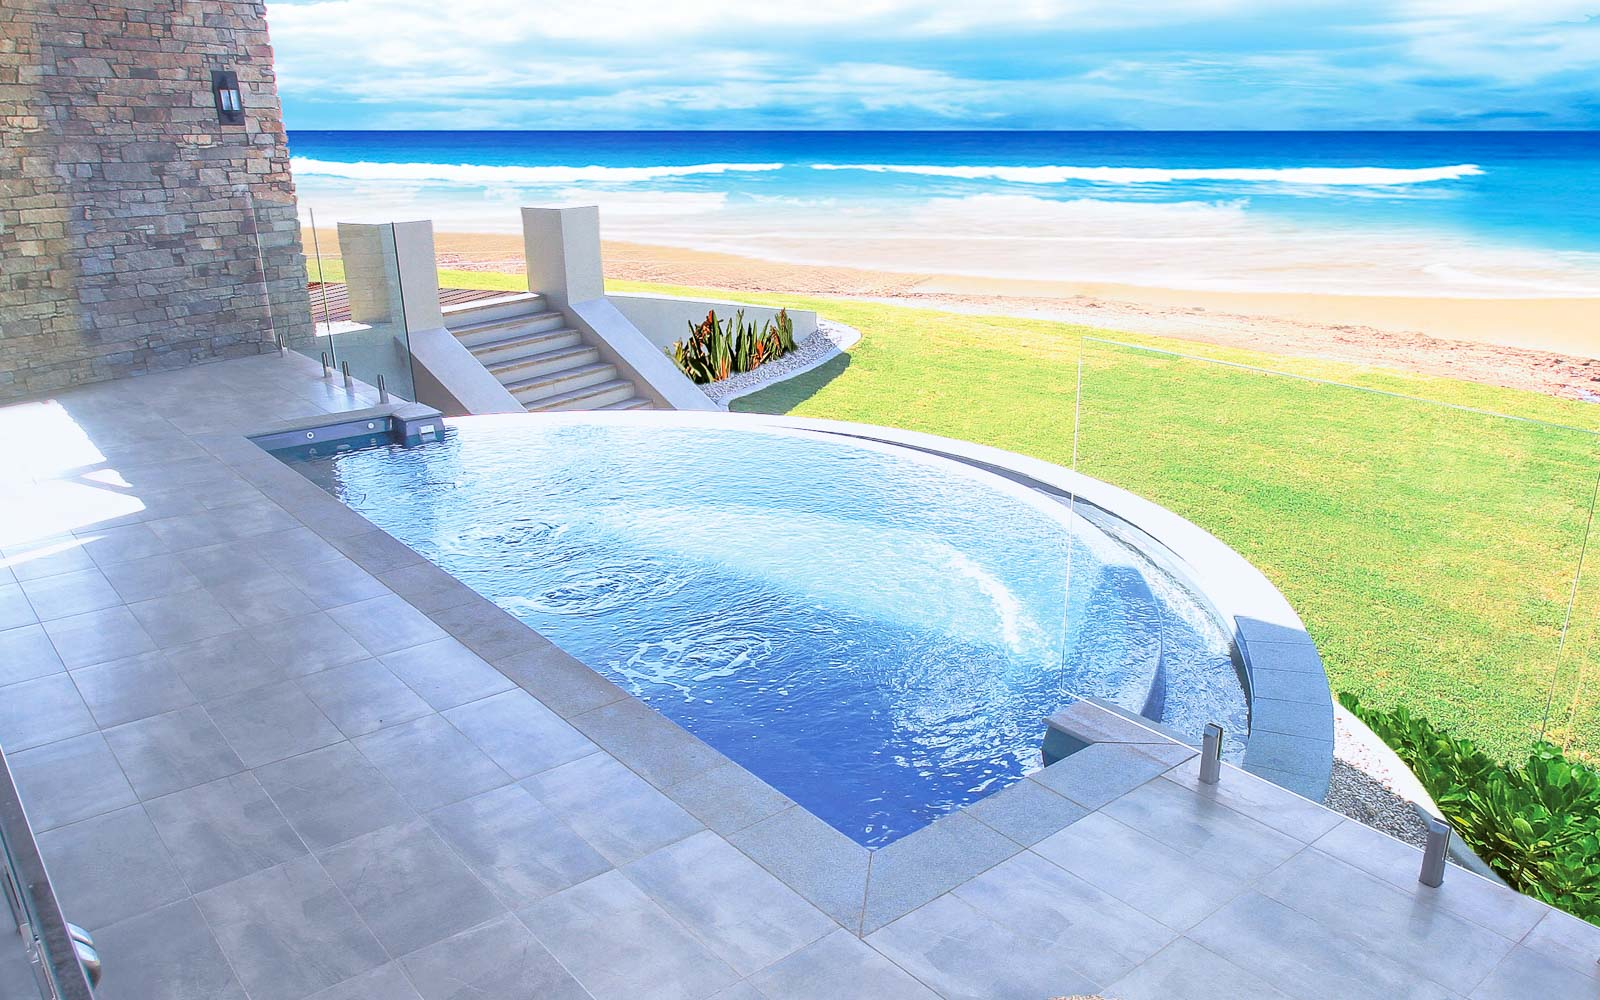 Leisure Pools Horizon fiberglass in-ground swimming pool with an infinity edge